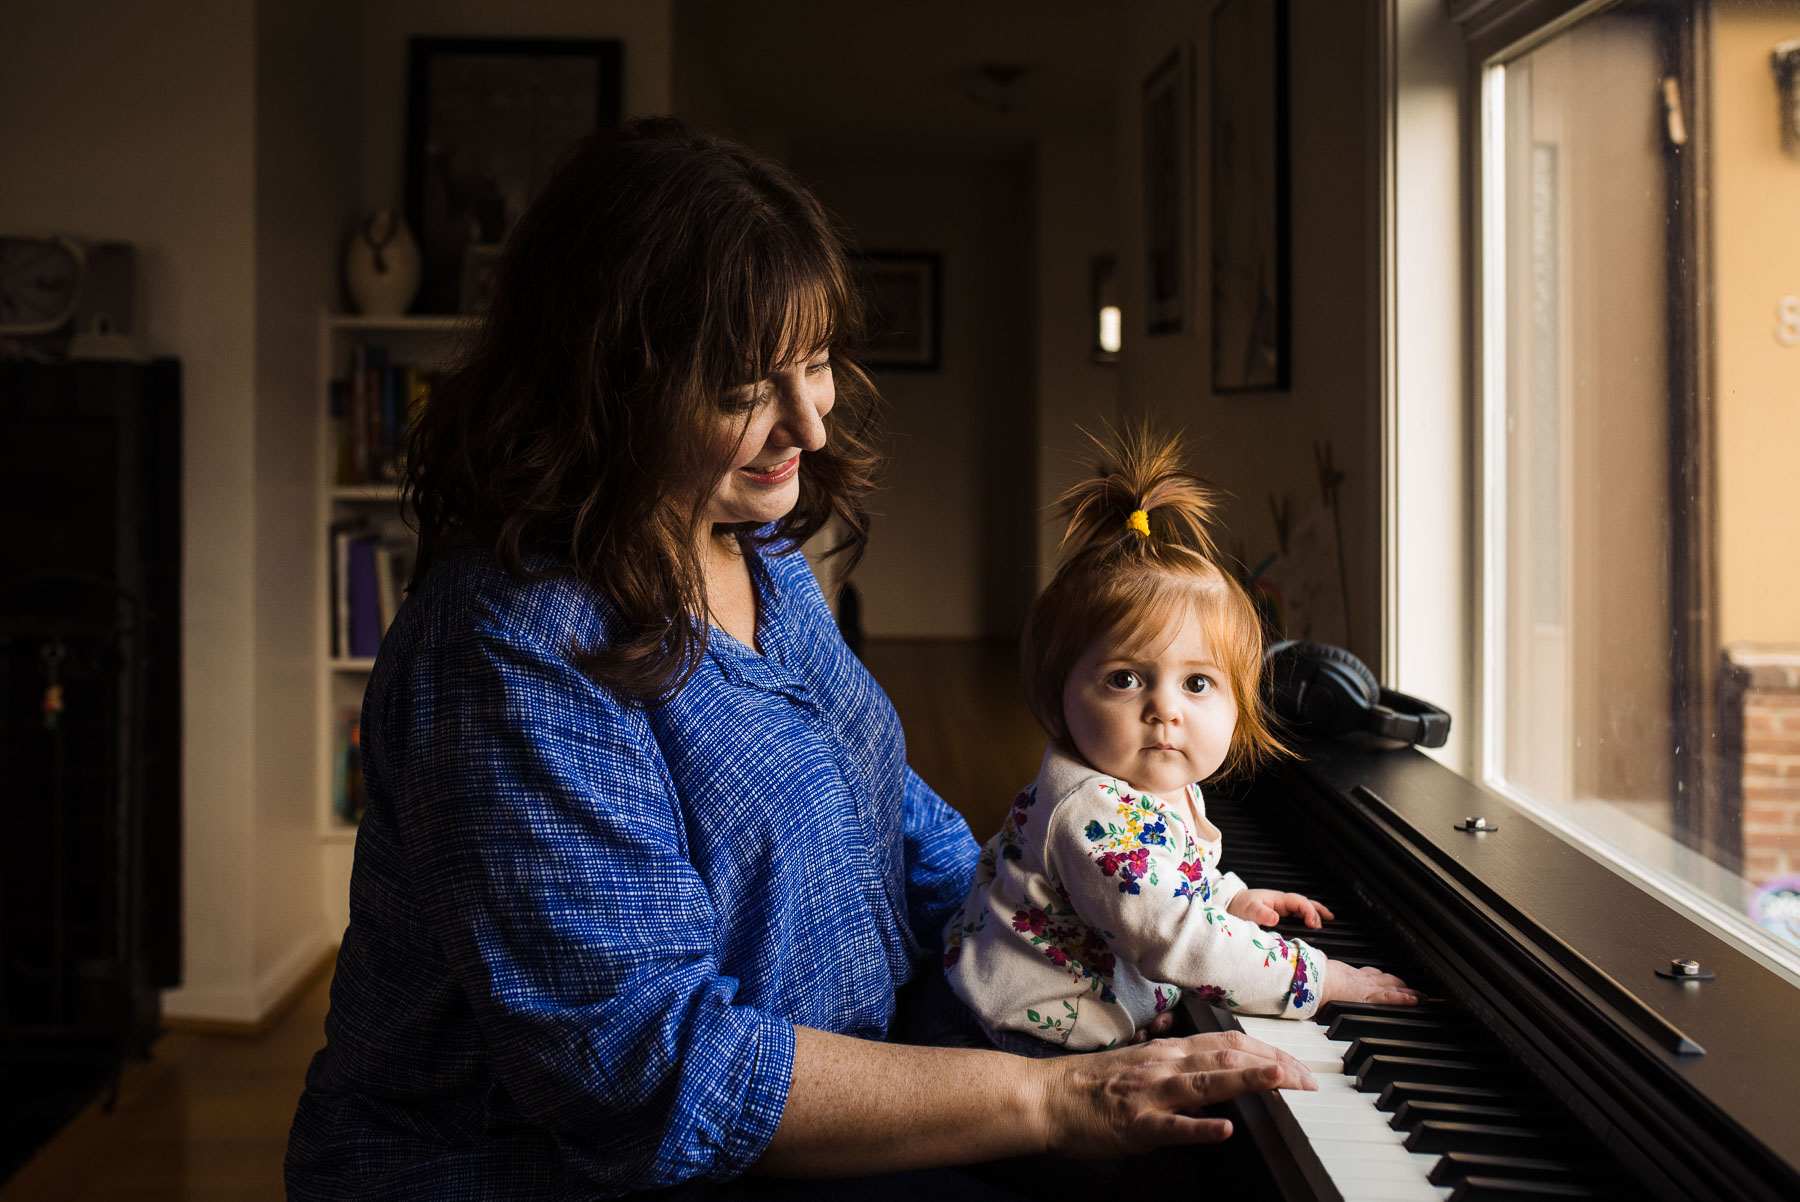 mother sitting at piano with baby